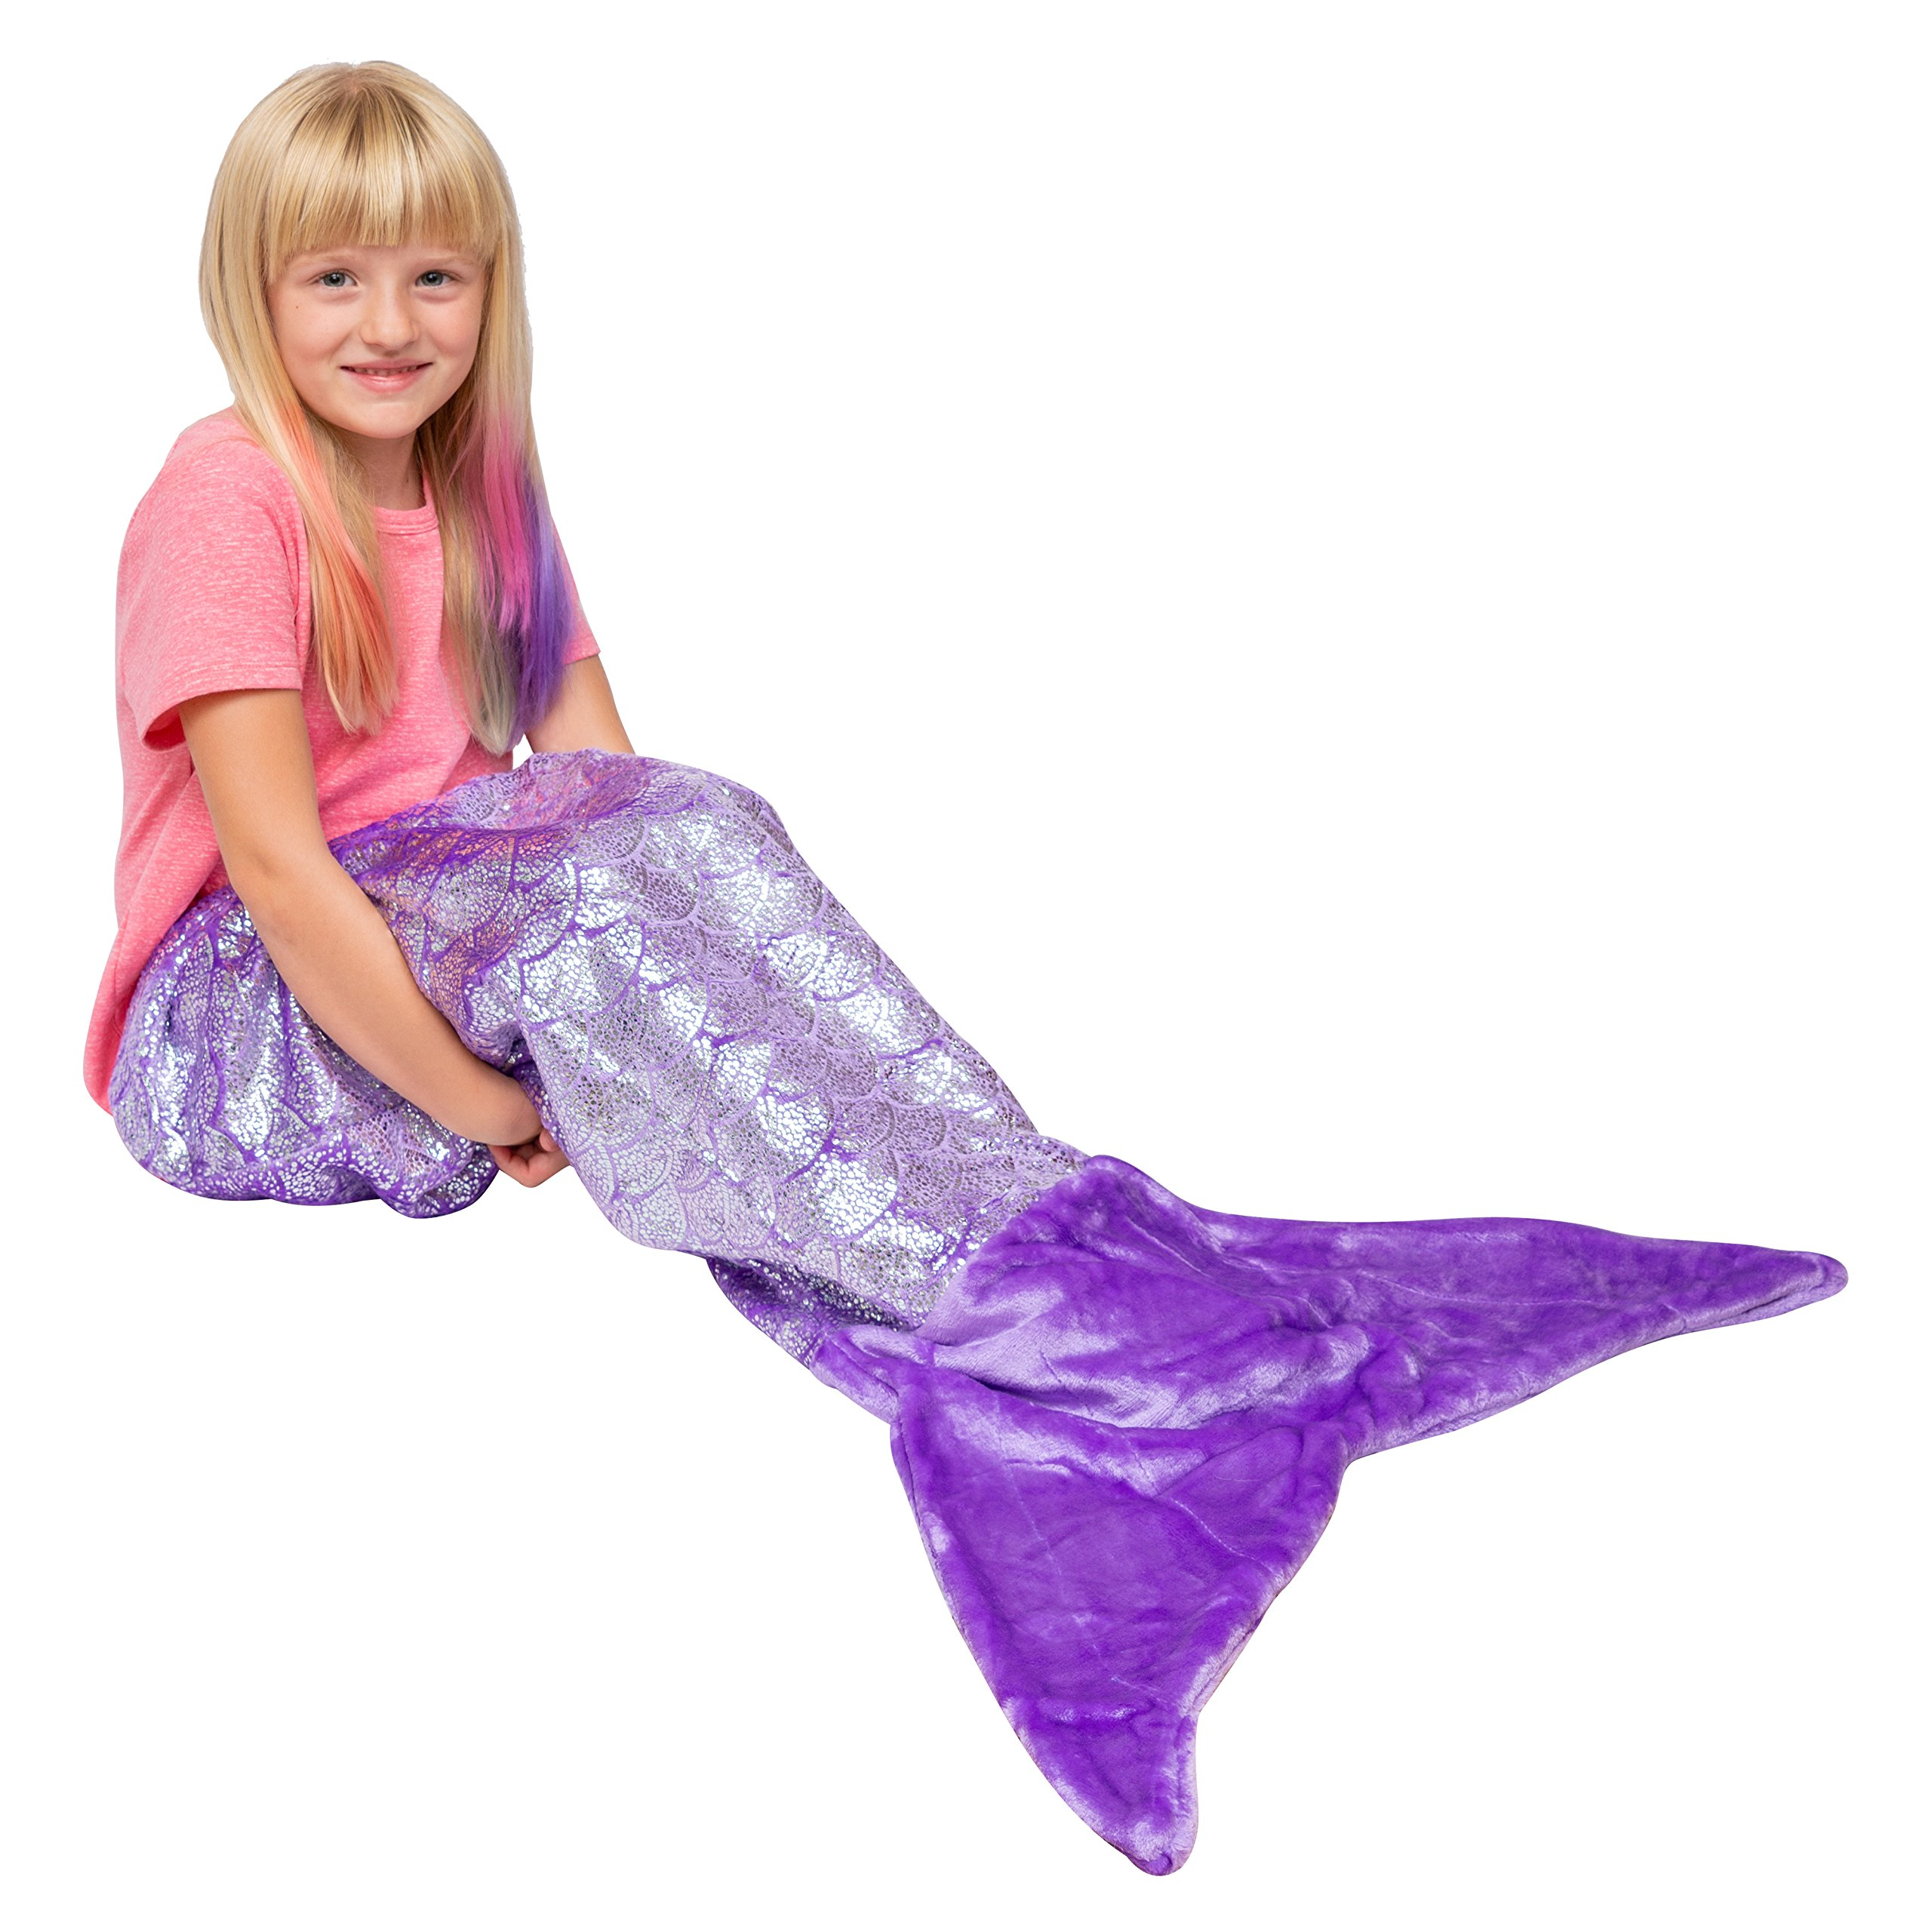 PixieCrush Mermaid Tail Blankets (Child, Shiny Purple) by PixieCrush